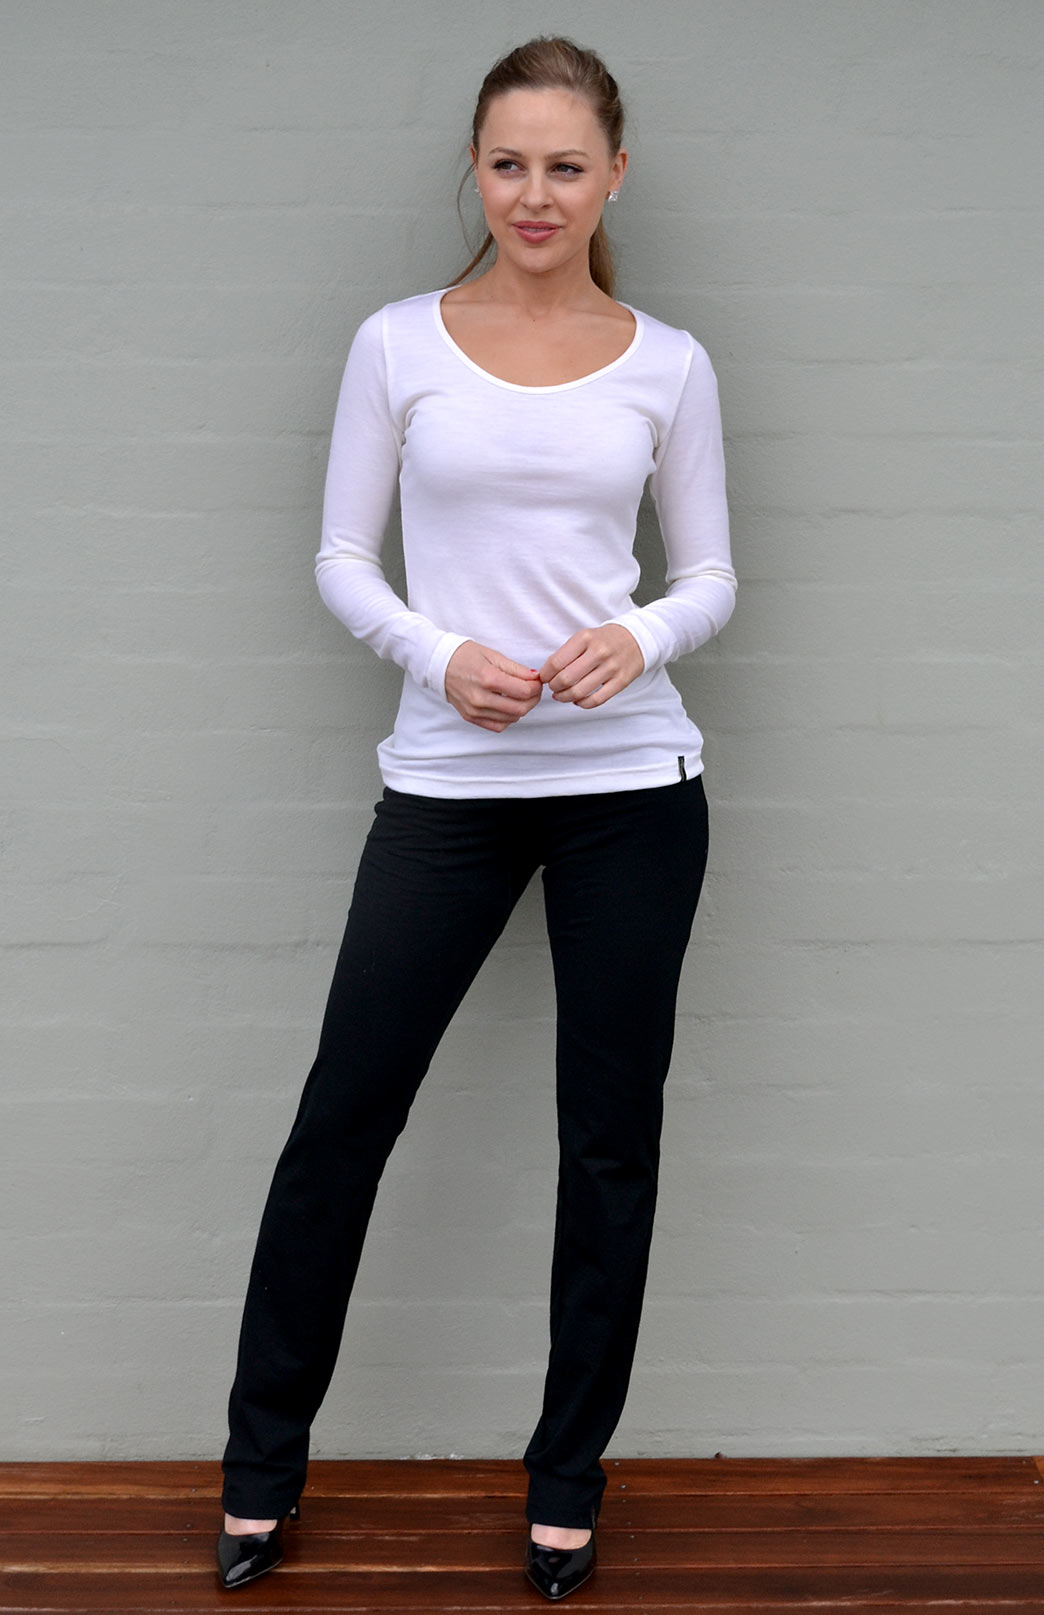 Scoop Neck Top - Plain - Women's Ivory Pure Merino Wool Long Sleeved Layering Top with Scoop Neckline - Smitten Merino Tasmania Australia